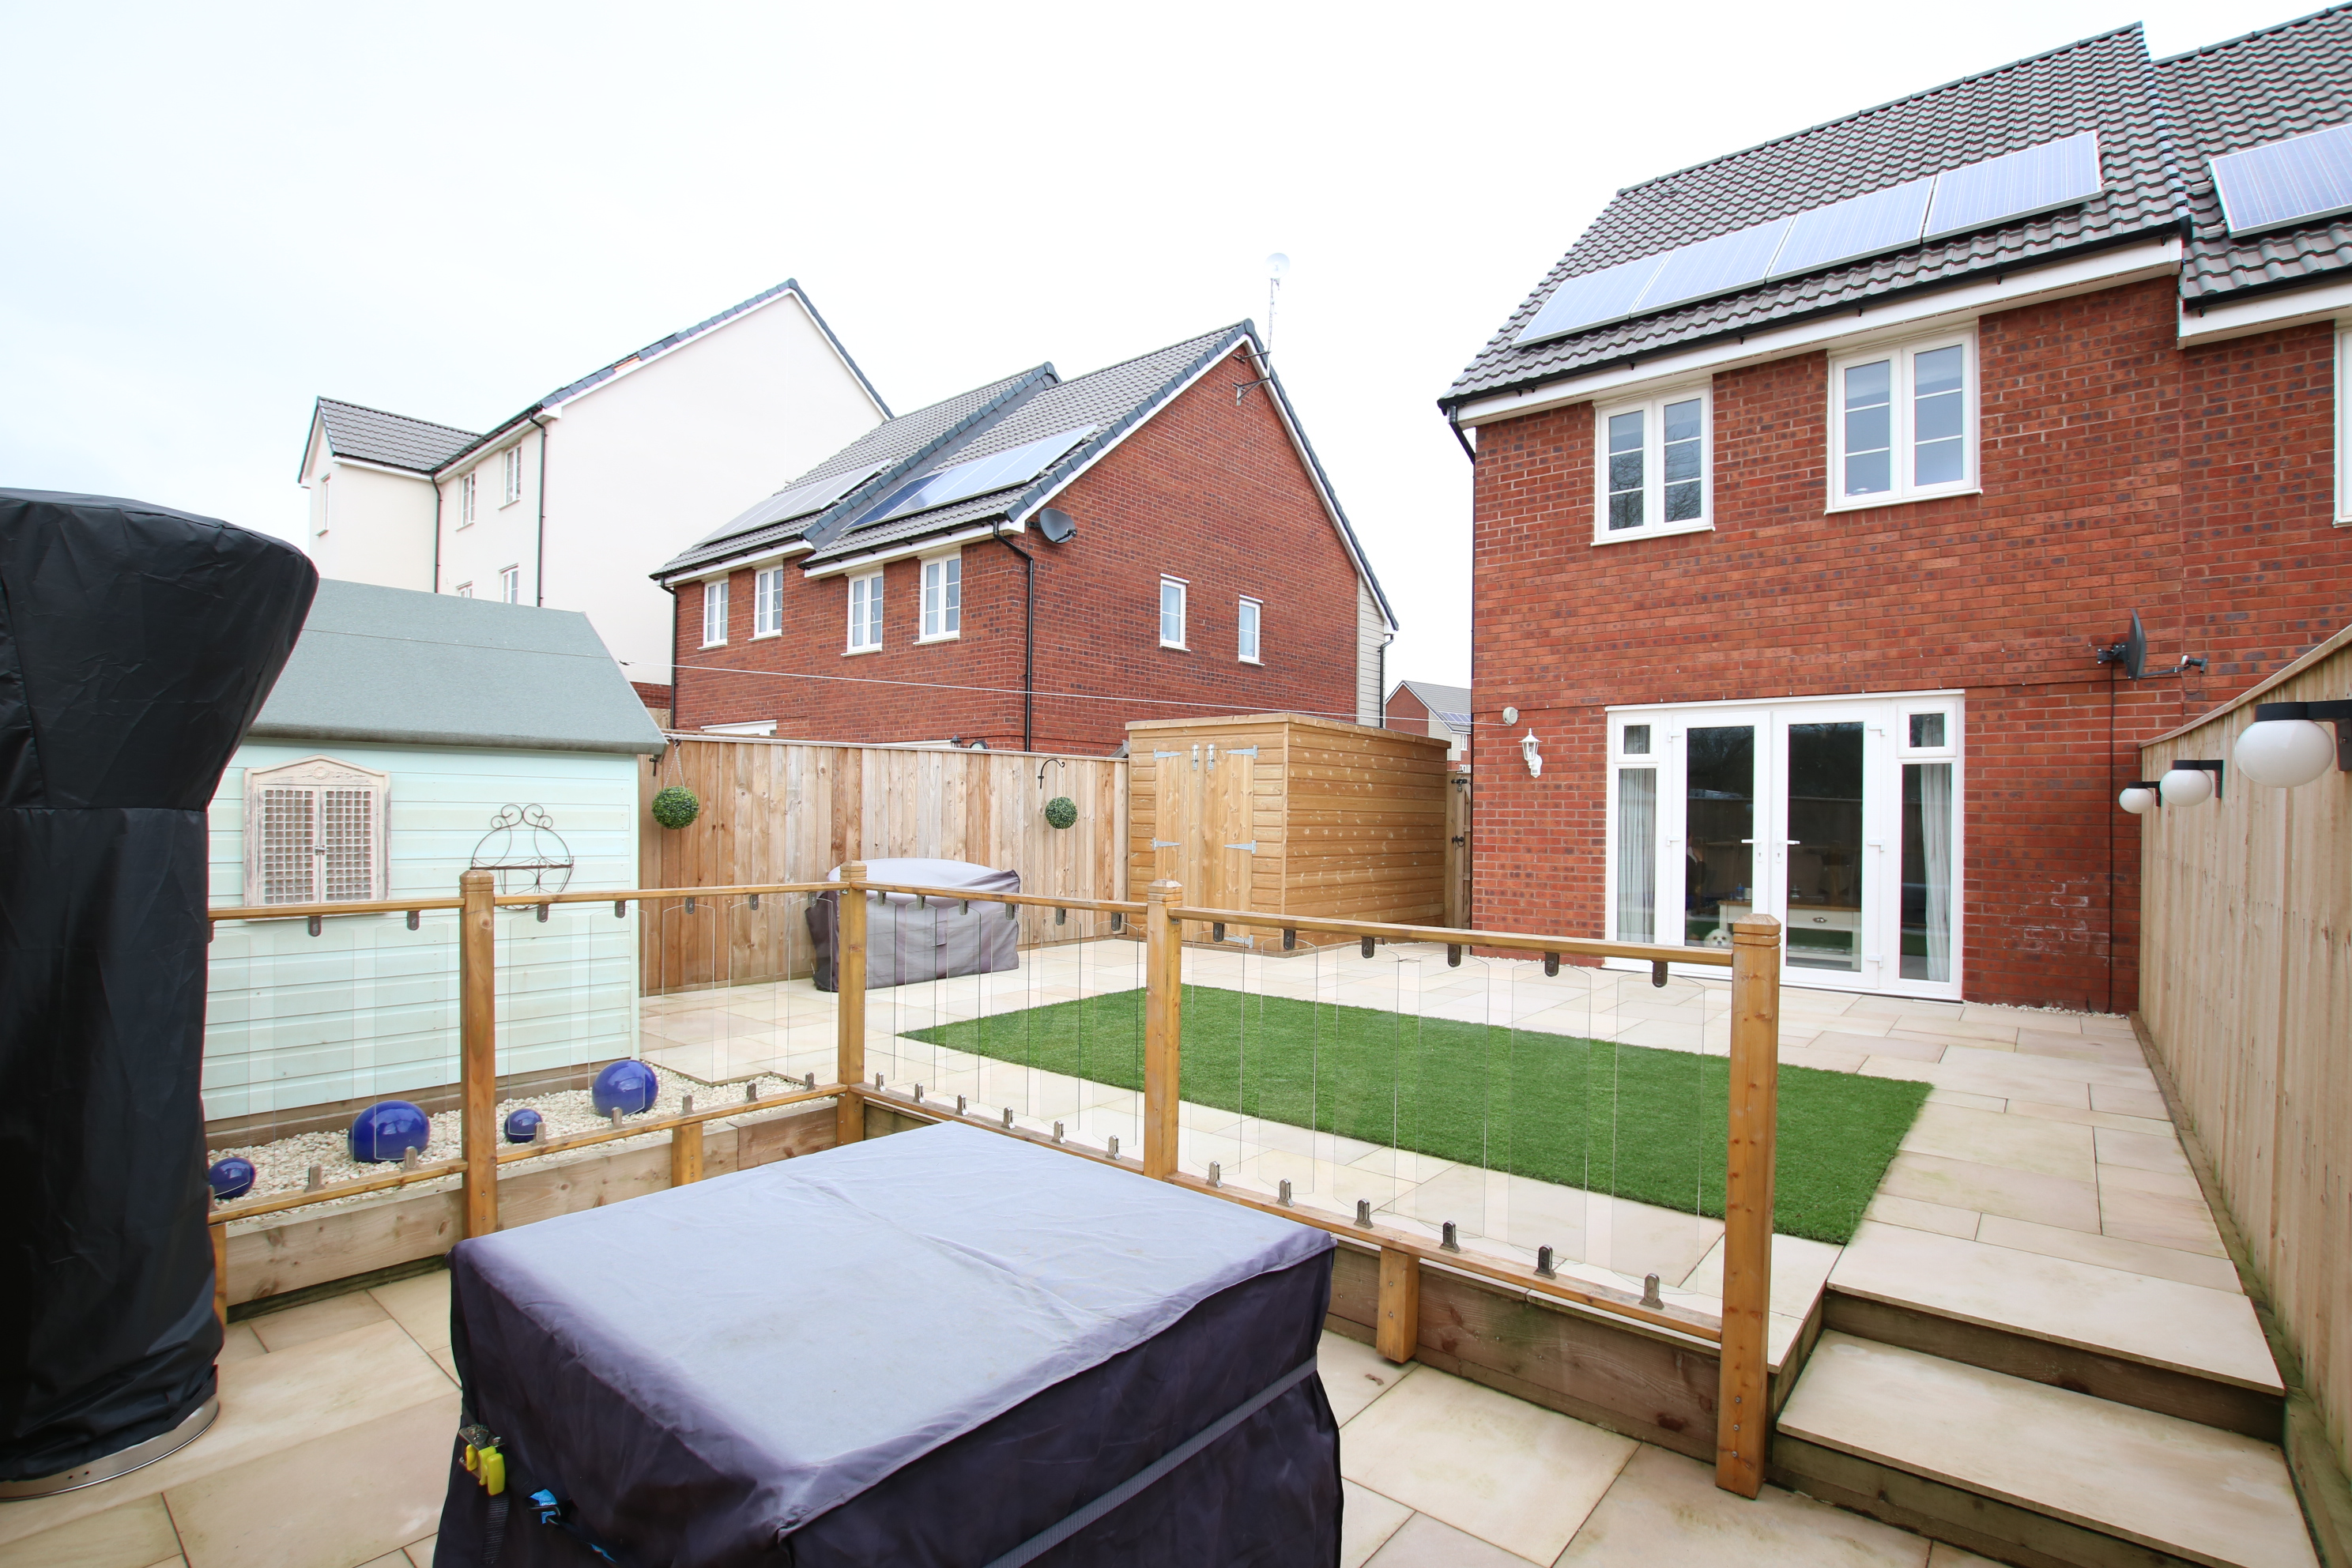 Semi detached property with landscaped rear garden and superb open outlook to the rear with two double bedrooms and and ensuite shower room the house